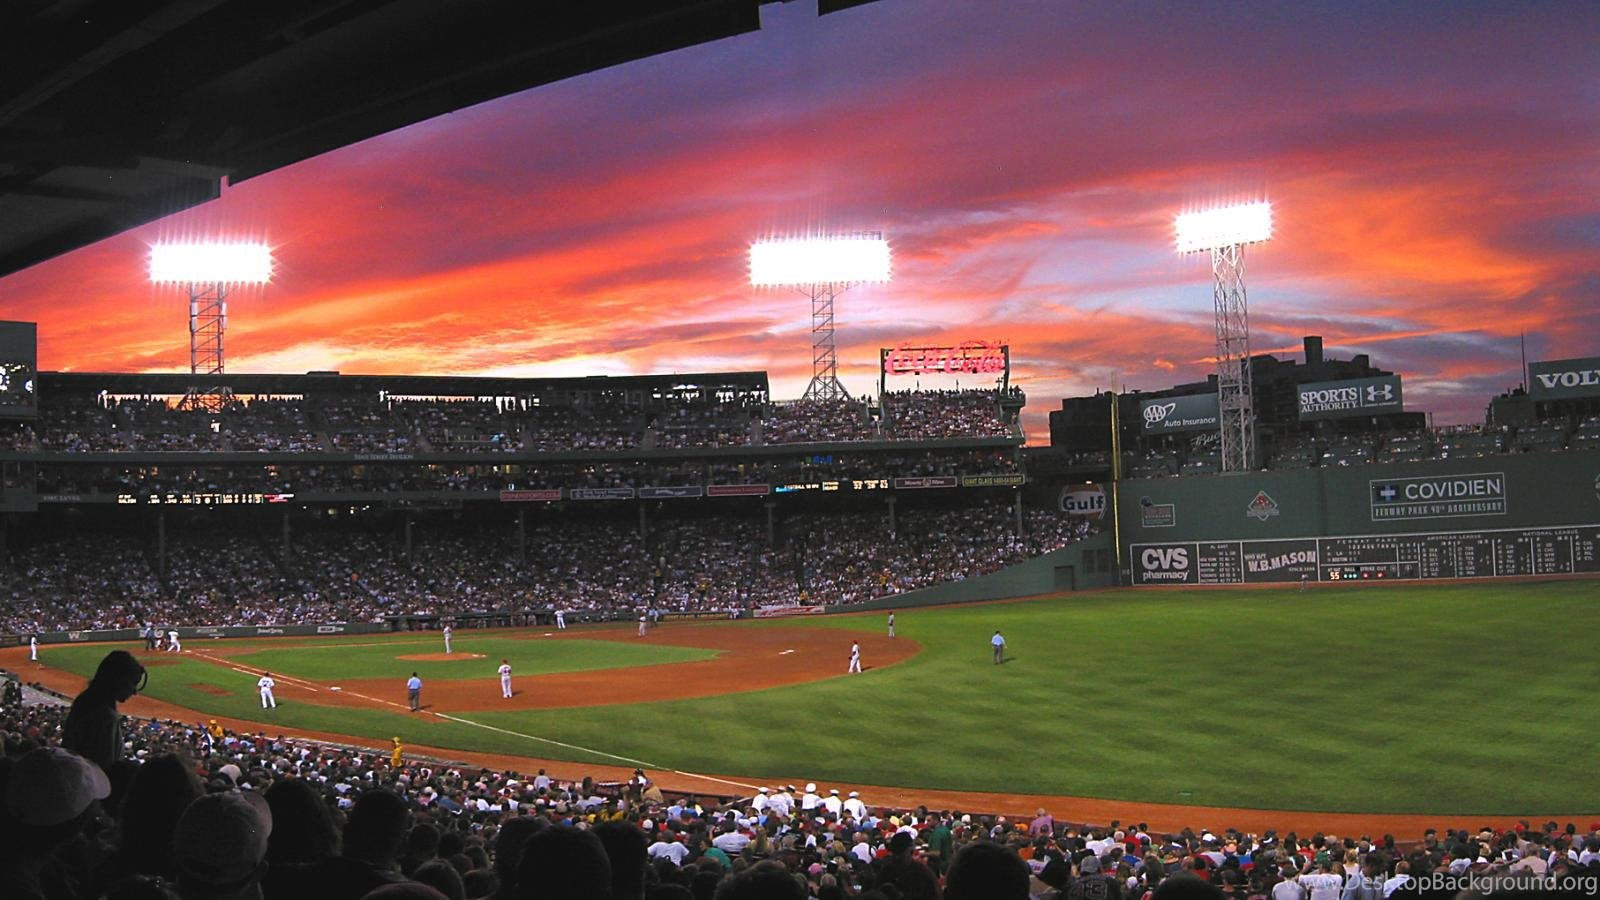 Hd Wallpapers For Mobile Free Download 480x800 Wallpapers Boston Red Sox Fenway Park 1600x900 Desktop